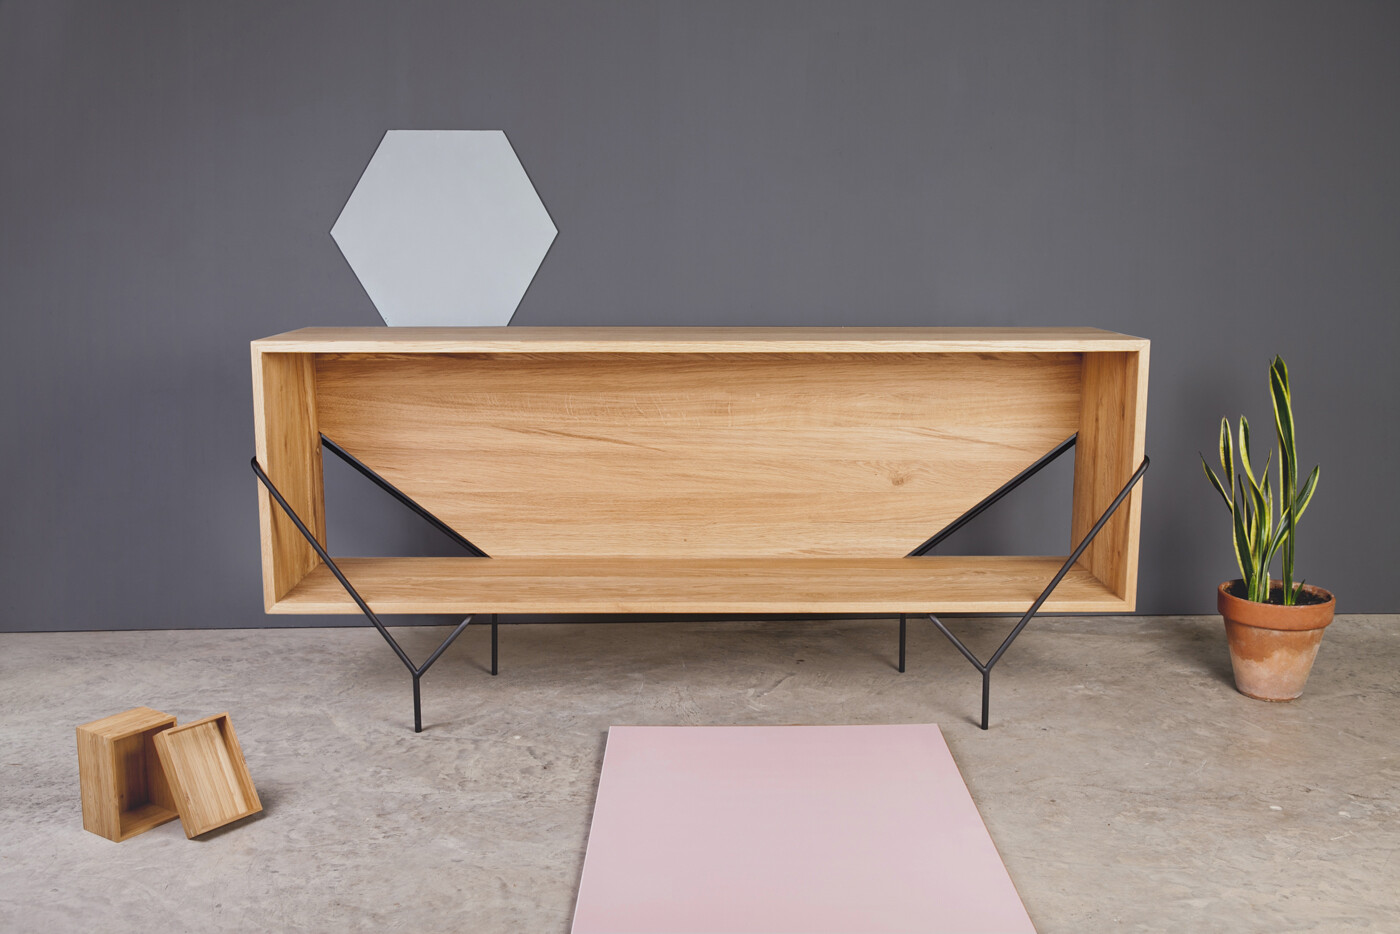 Collection Y by Kutarq Studio: geometric shapes and metal-wood combination